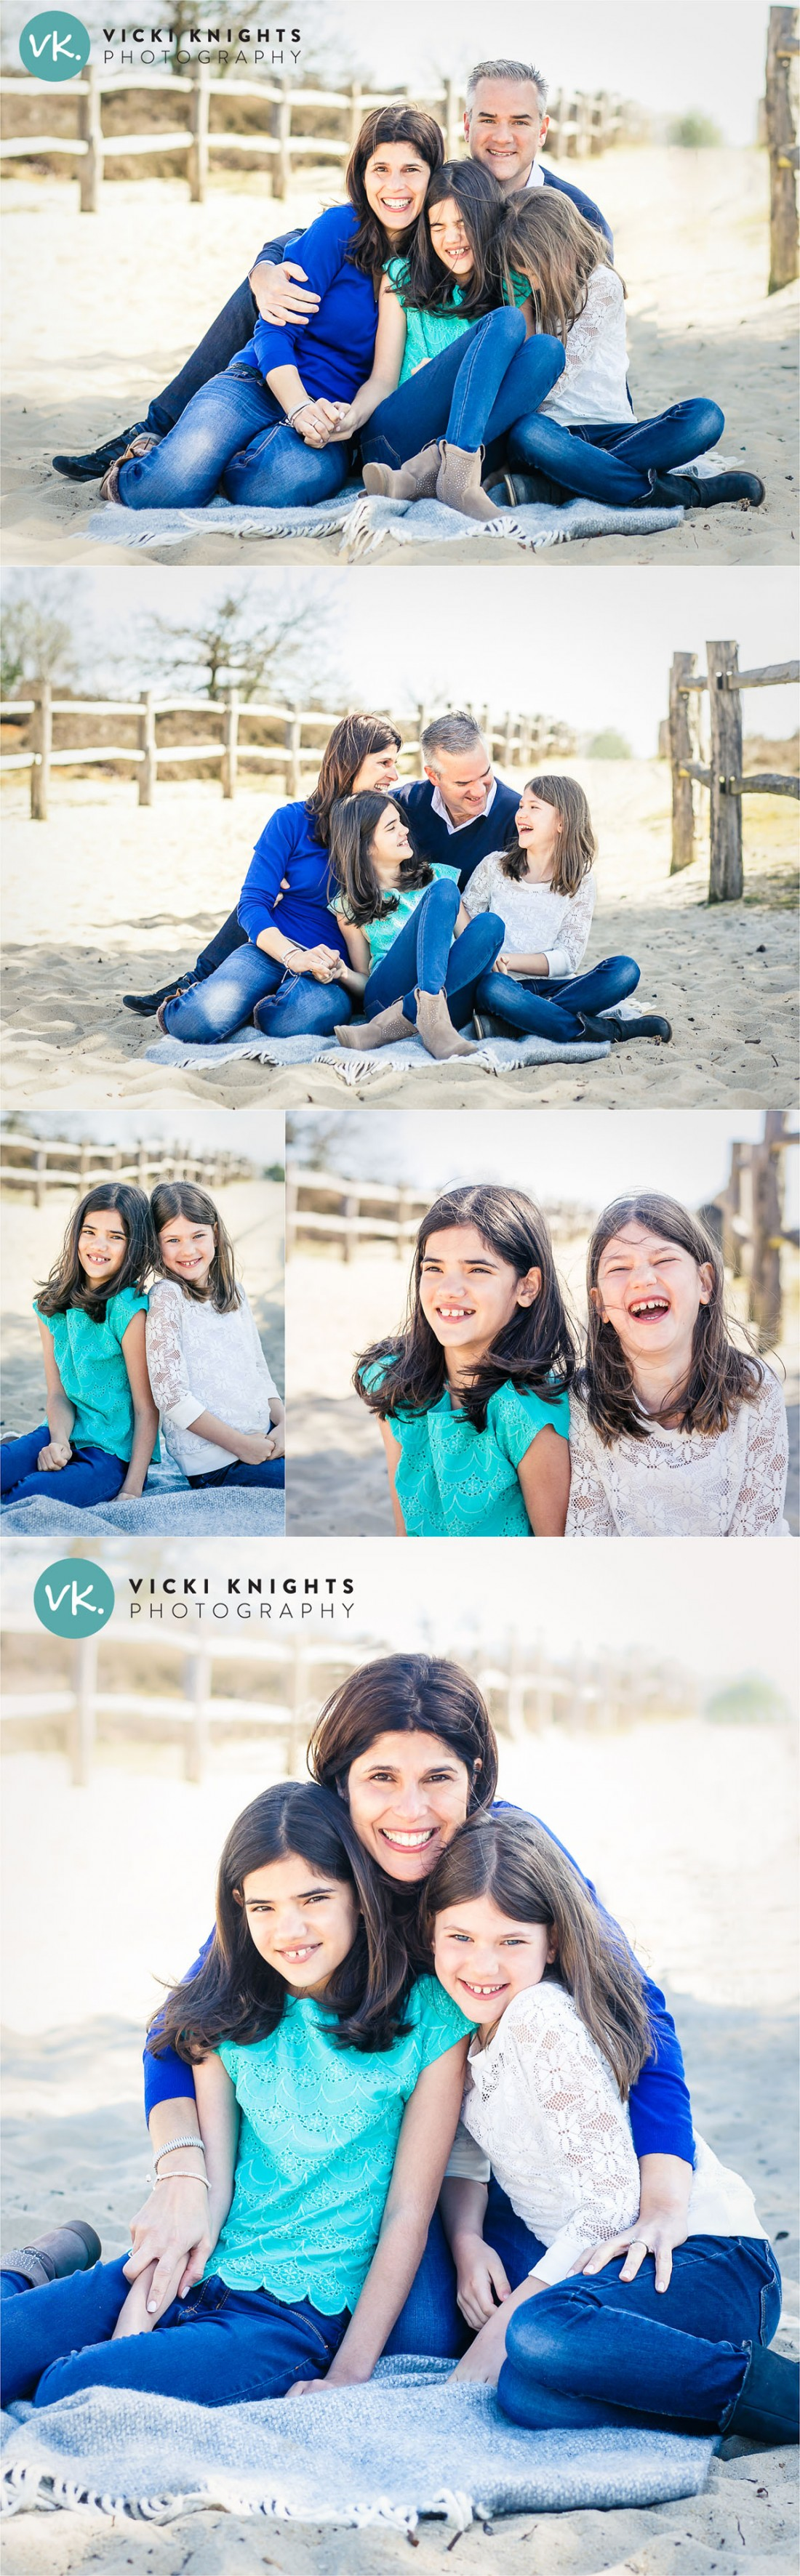 farnham-family-photographer-vicki-knights